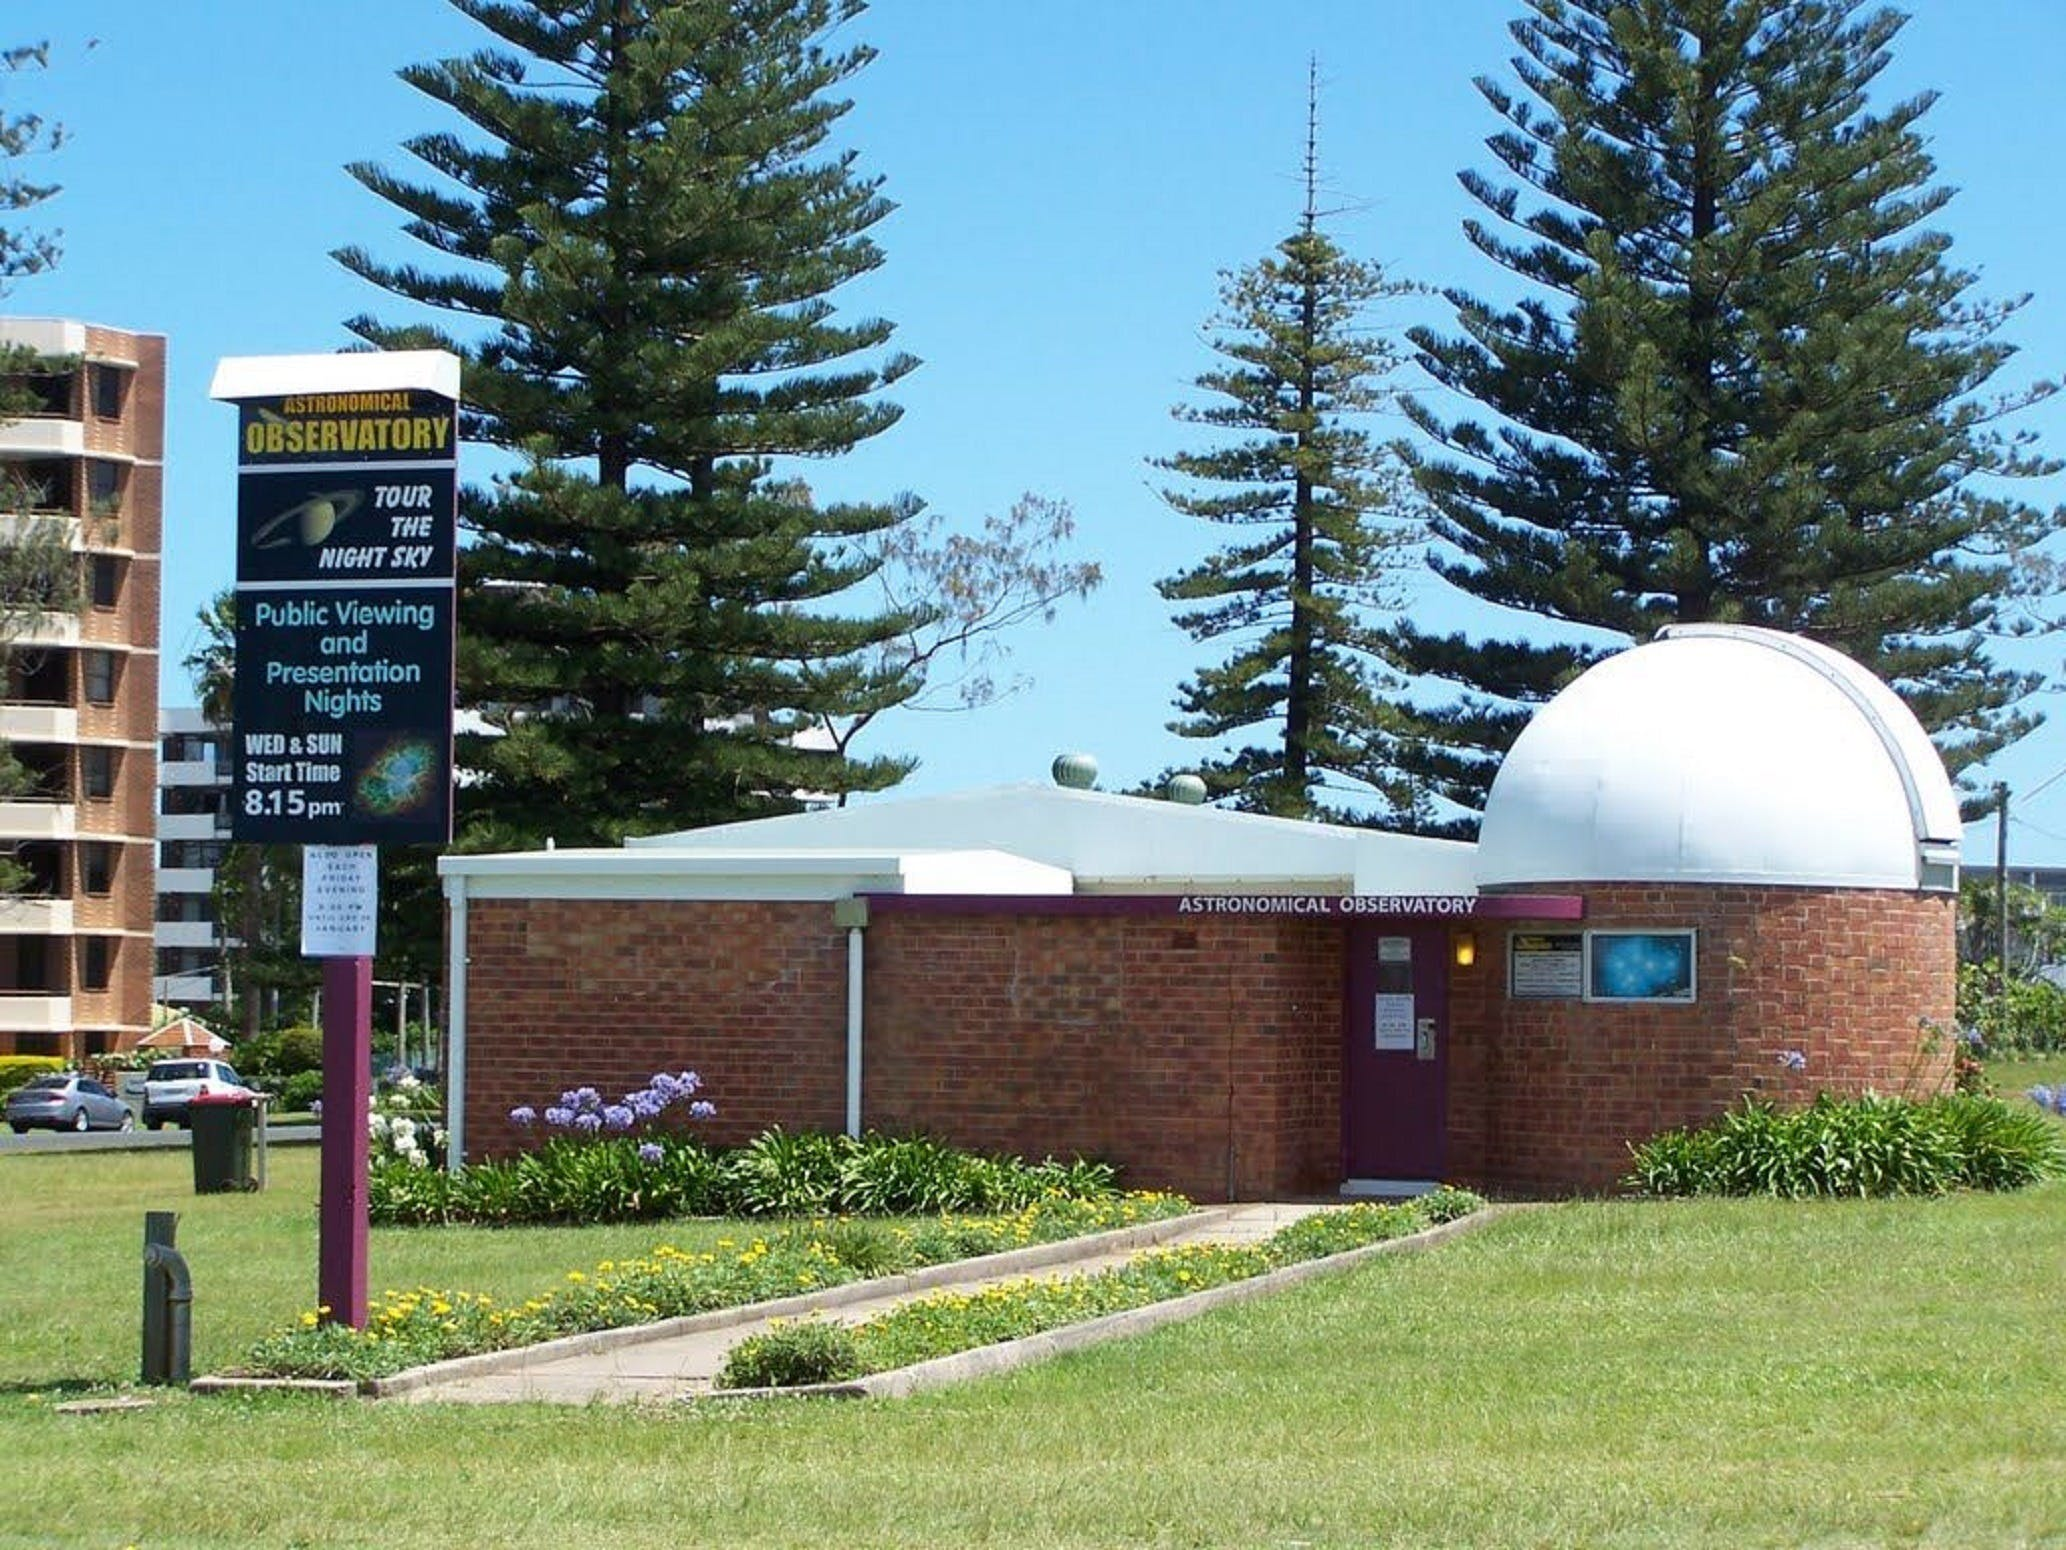 Port Macquarie Astronomical Observatory - Kalgoorlie Accommodation